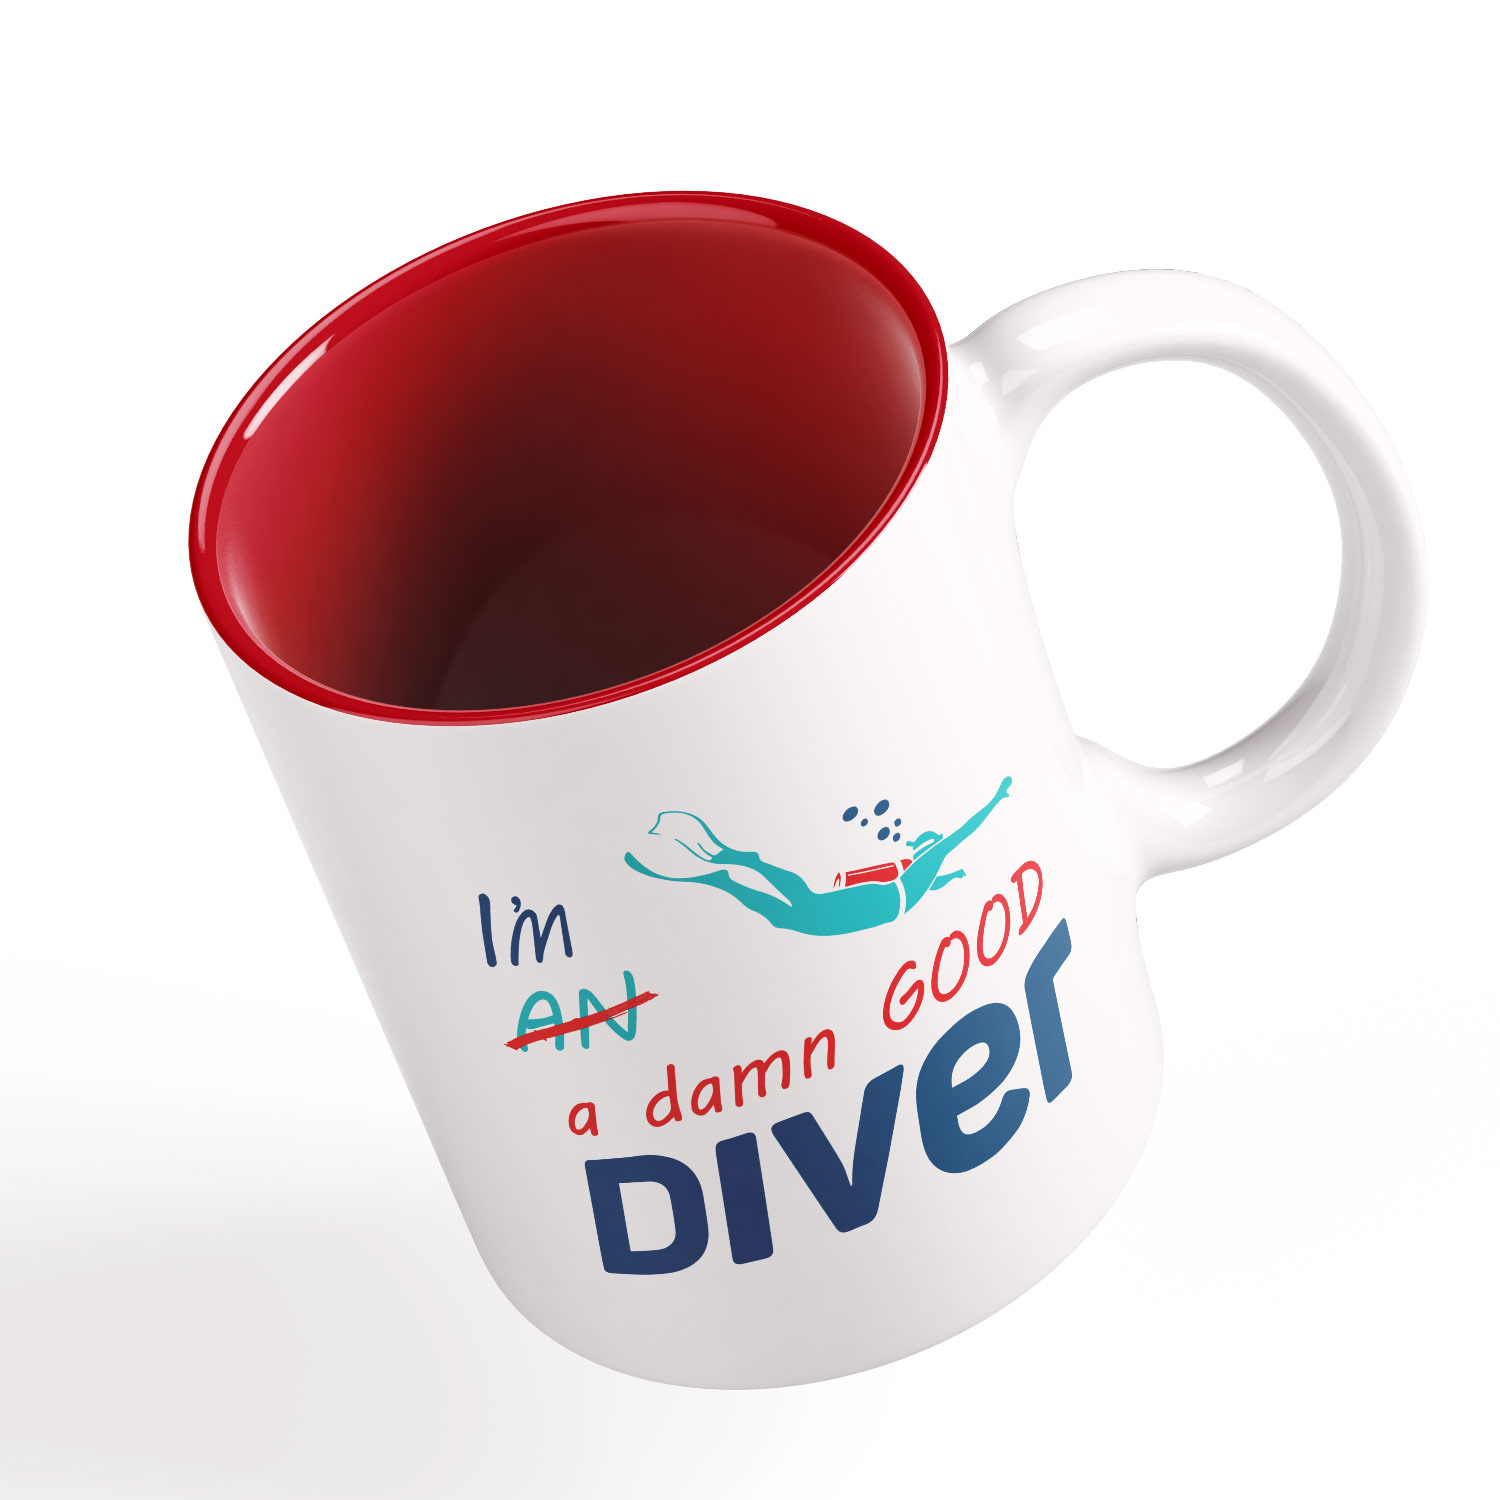 Personalized Funny Mugs Gift For Scuba Divers